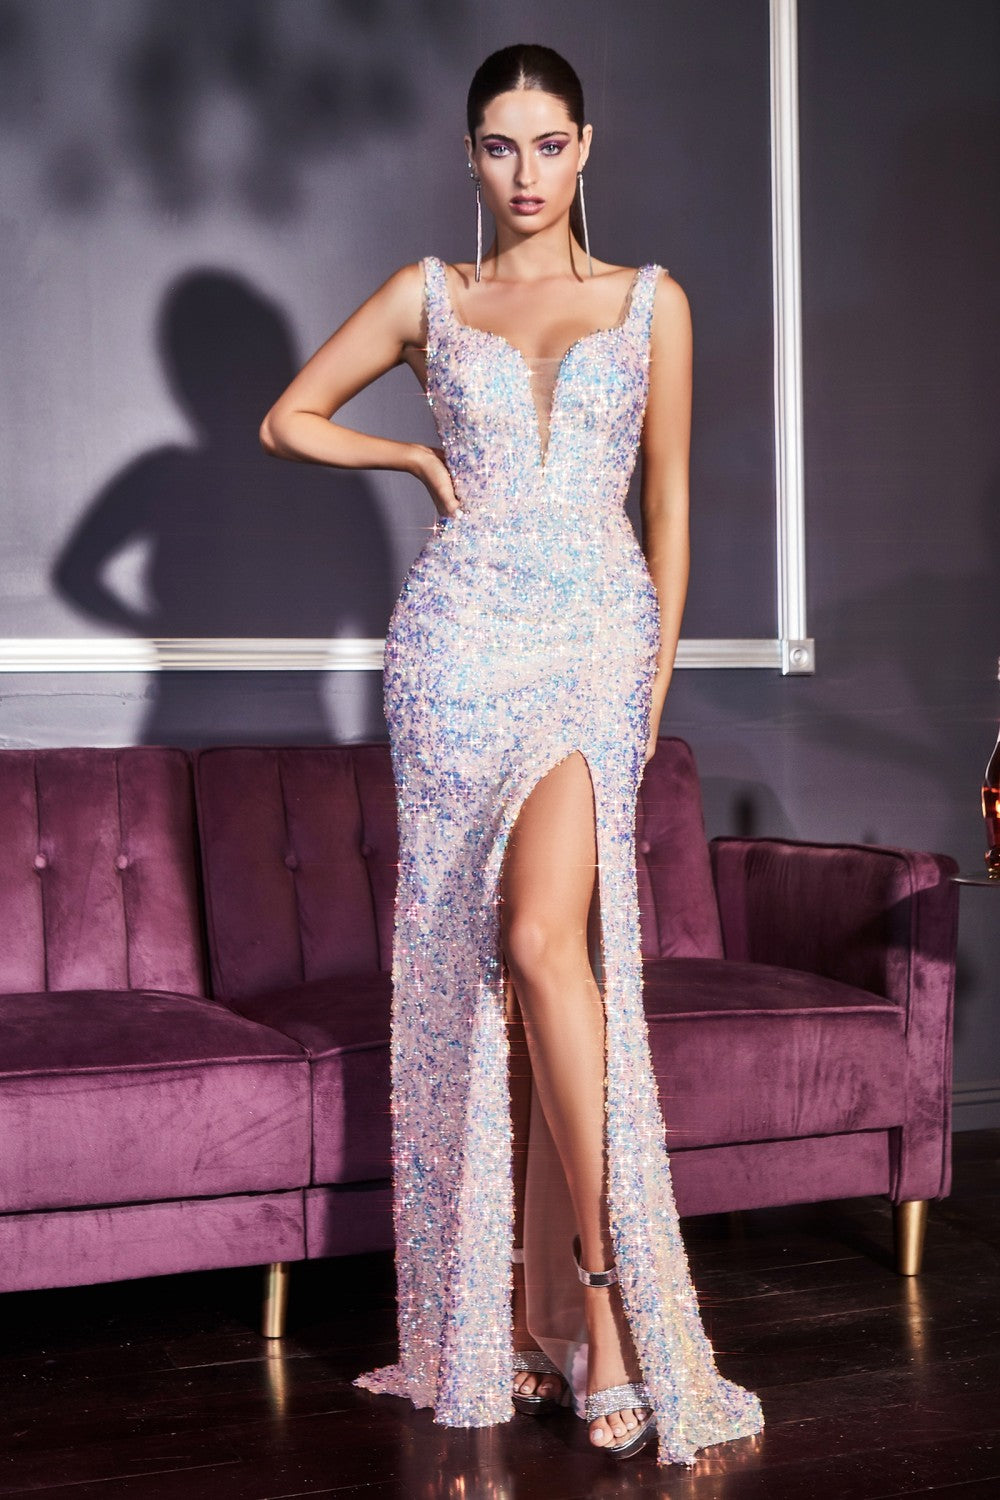 CD CDS187 - Iridescent Sequin Fit & Flare Prom Gown with Sheer Sides V-Neck Open V-Back & Leg Slit - Diggz Prom